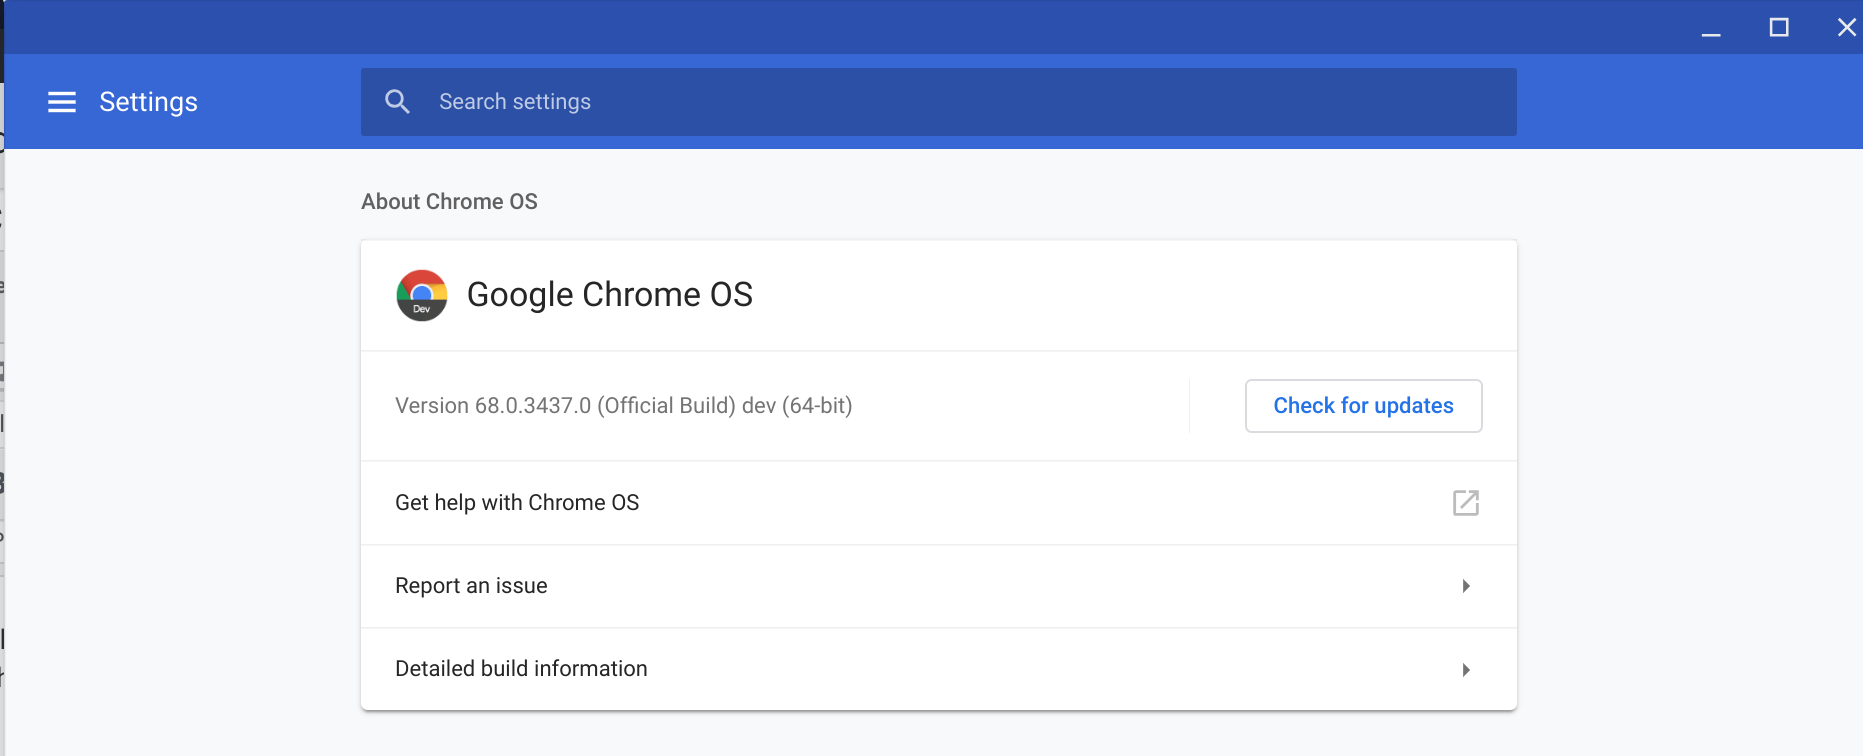 ChromeOS 68.0.3437.0 Brings Shared Clipboards and The Ability To Access Linux Filesystems To The ChromeOS File Manager